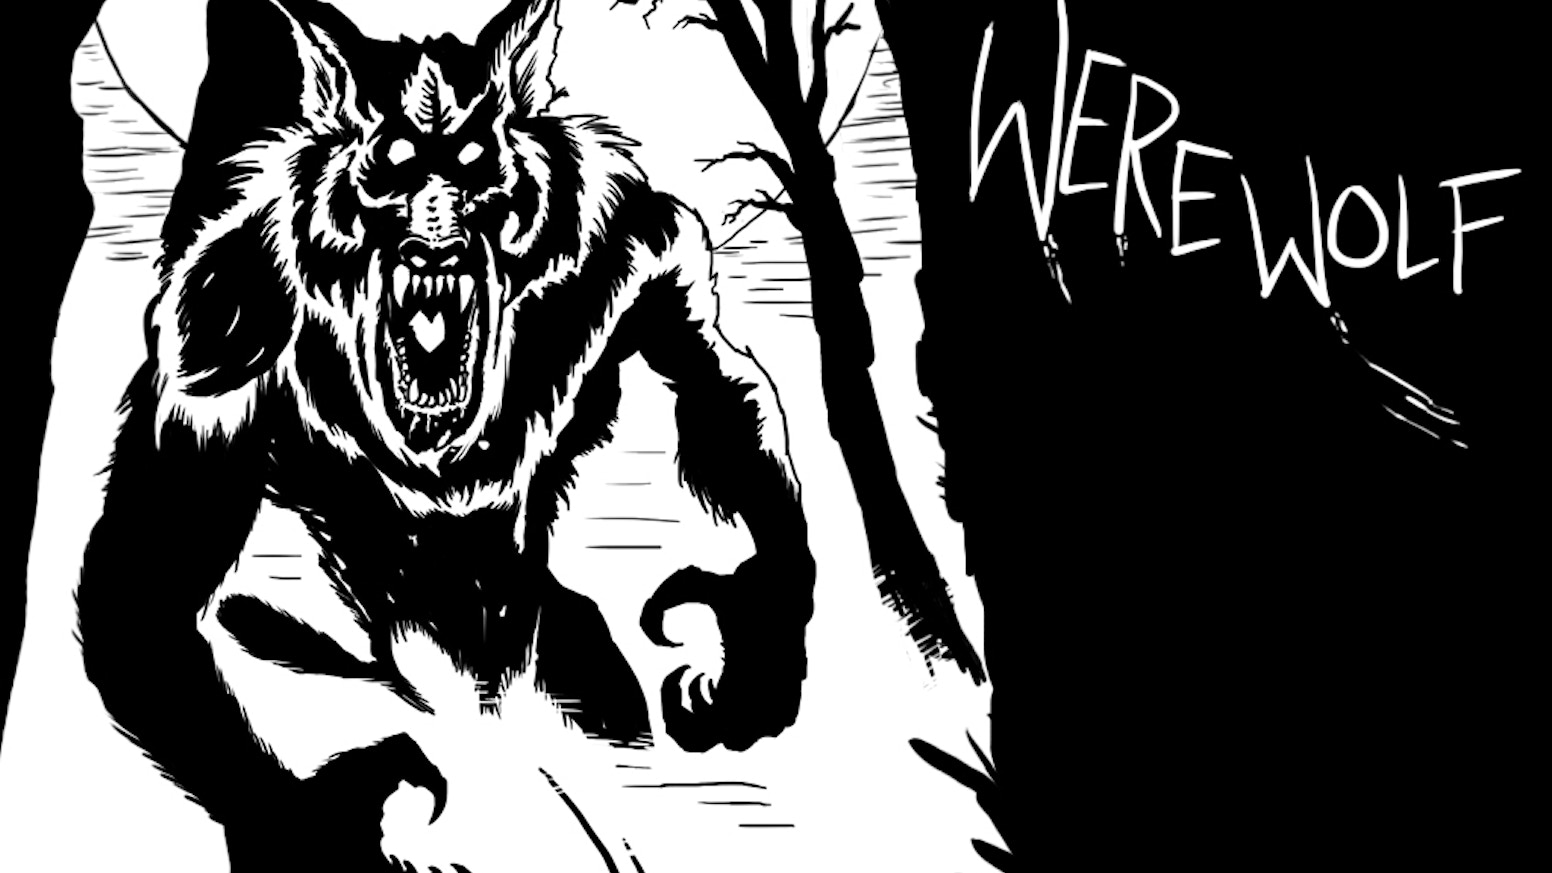 33 Individual dark and gritty Noir Style Cards for the party game Werewolf...(Game instructions & Rules included)